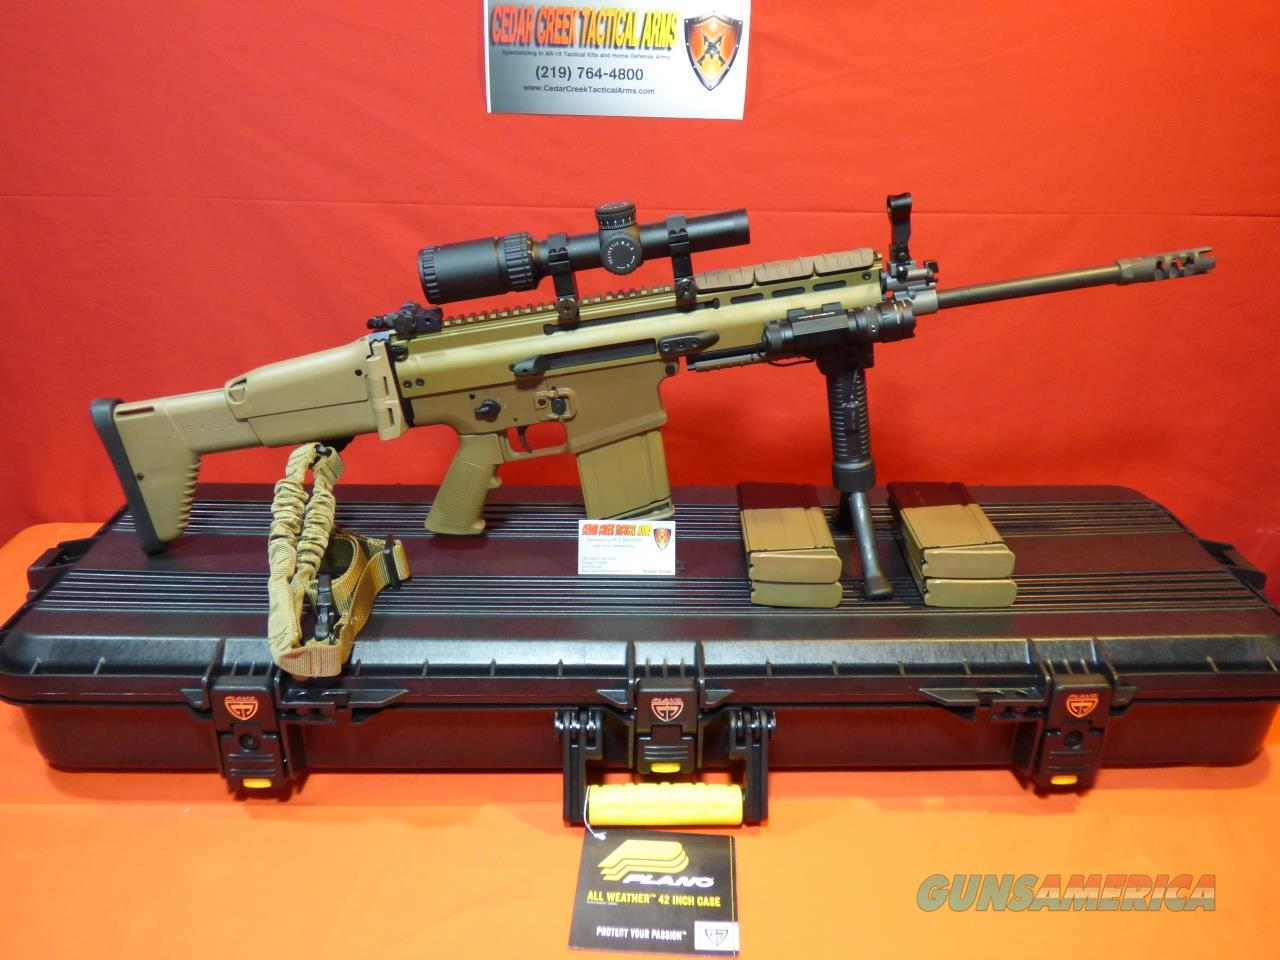 FNH Scar 17s Deluxe Tactical Kit .308  Guns > Rifles > FNH - Fabrique Nationale (FN) Rifles > Semi-auto > SCAR